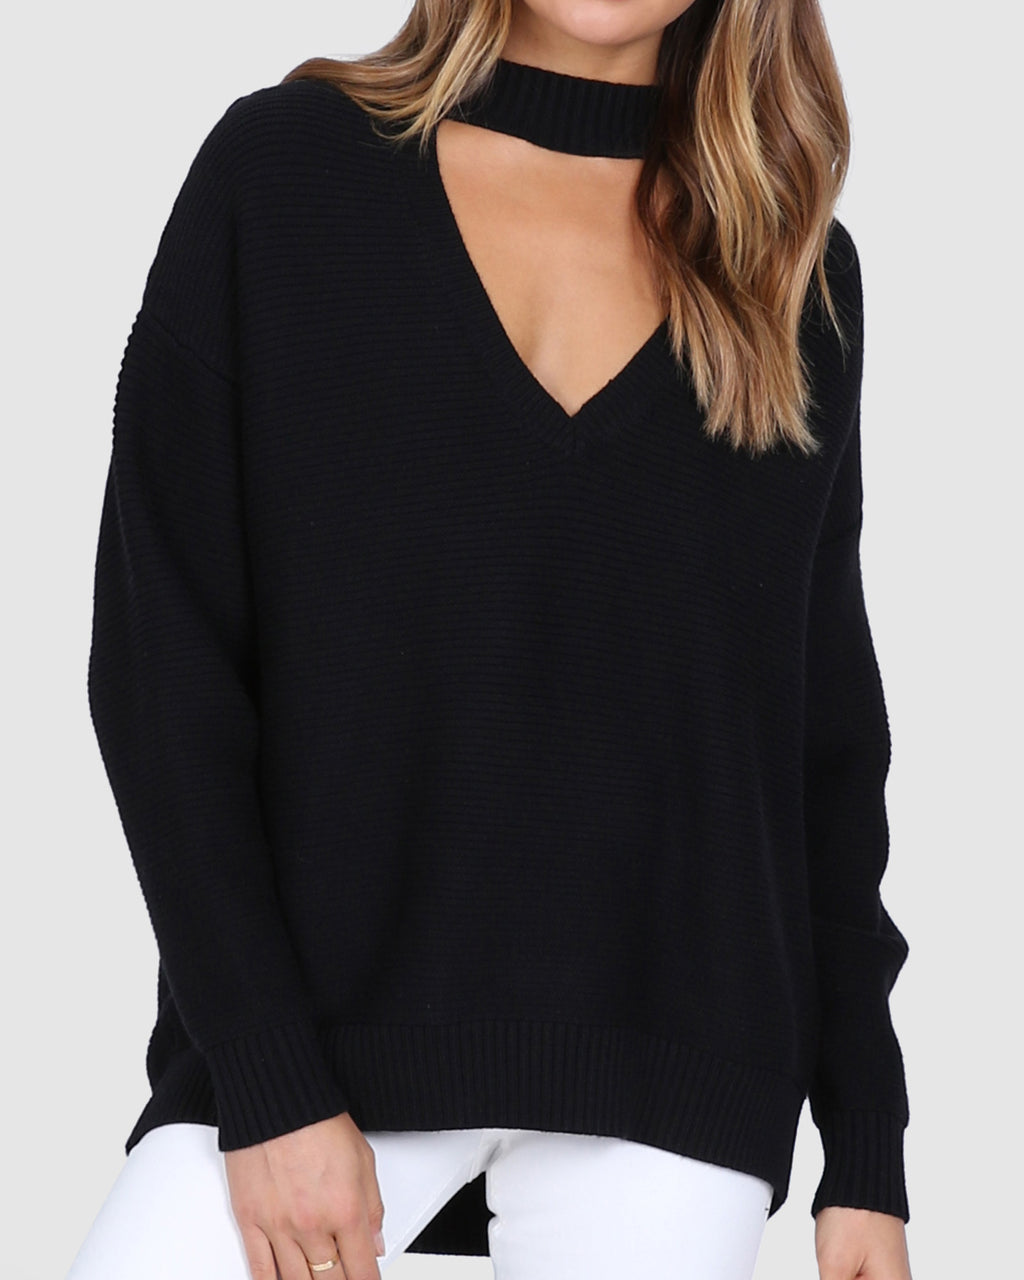 Frida Knit | Black